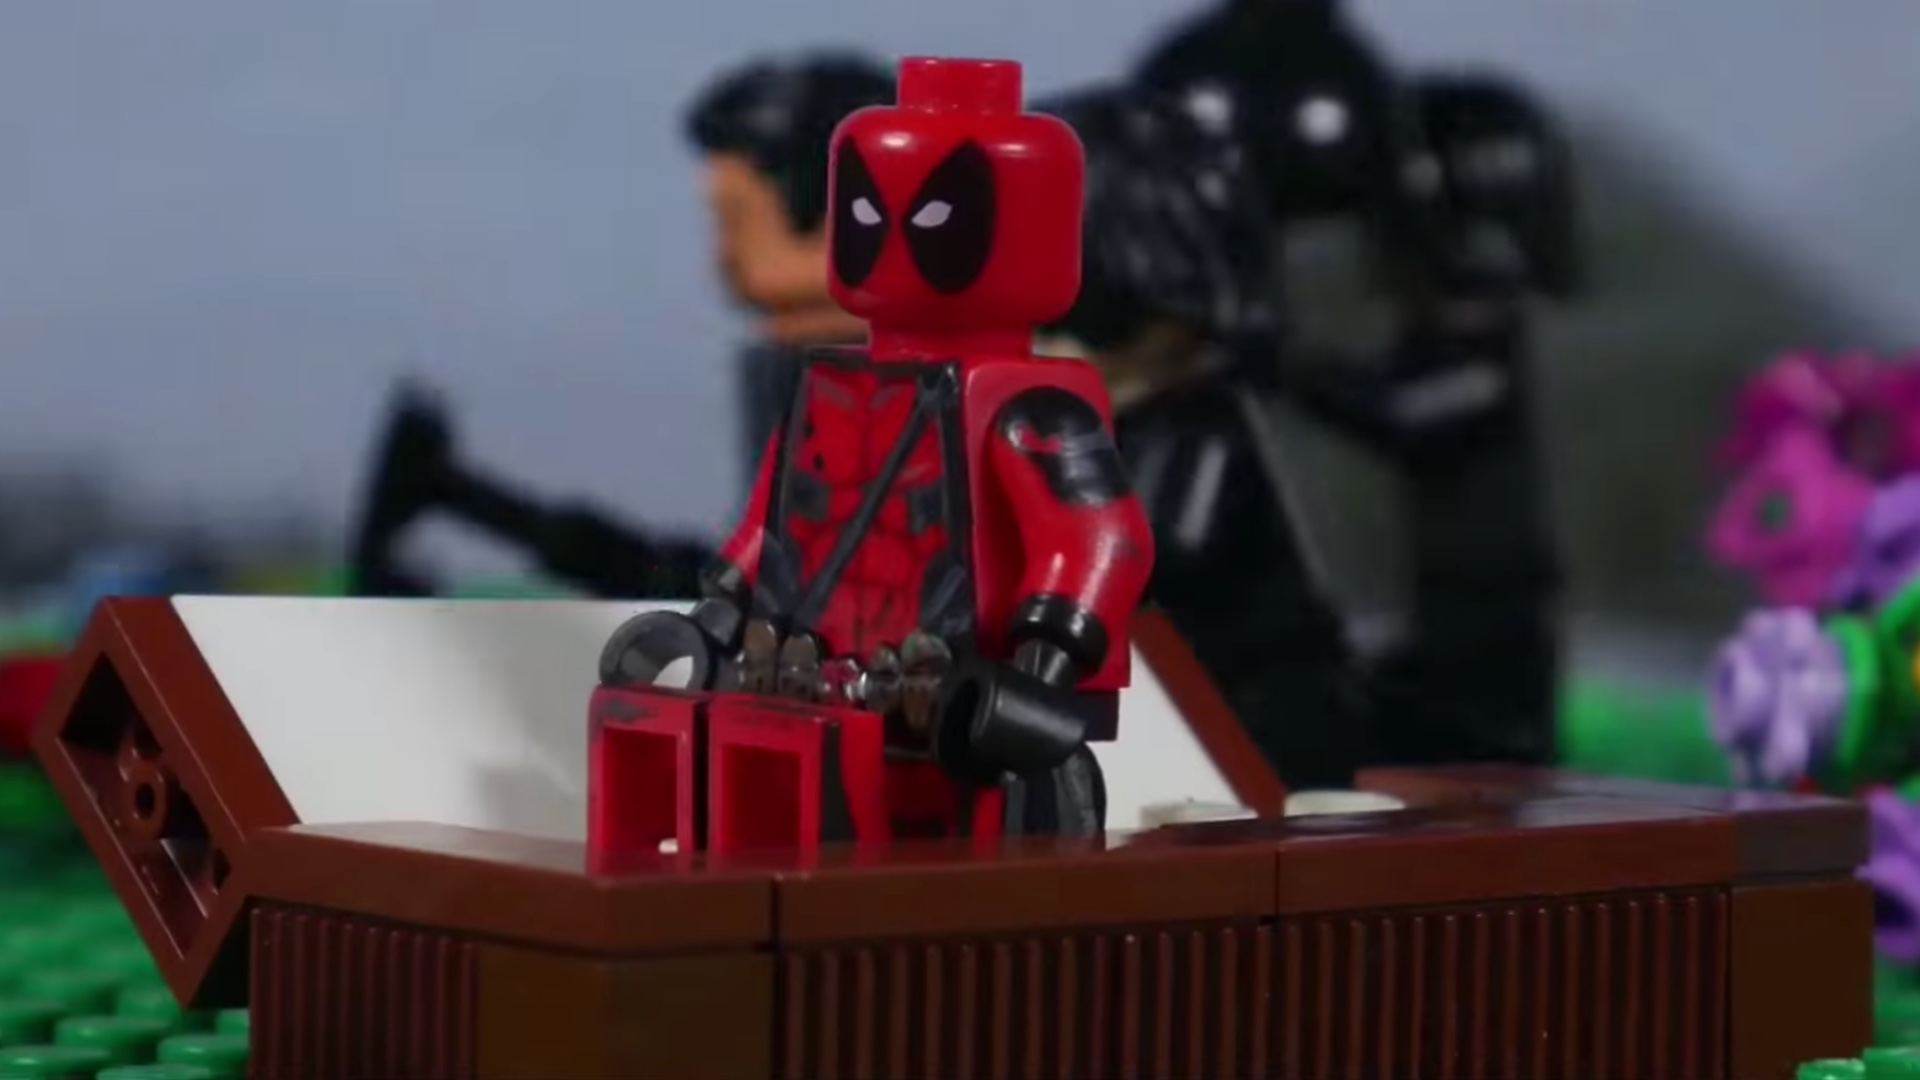 deadpool-2-teaser-trailer-gets-the-stop-motion-lego-treatment-social.jpg